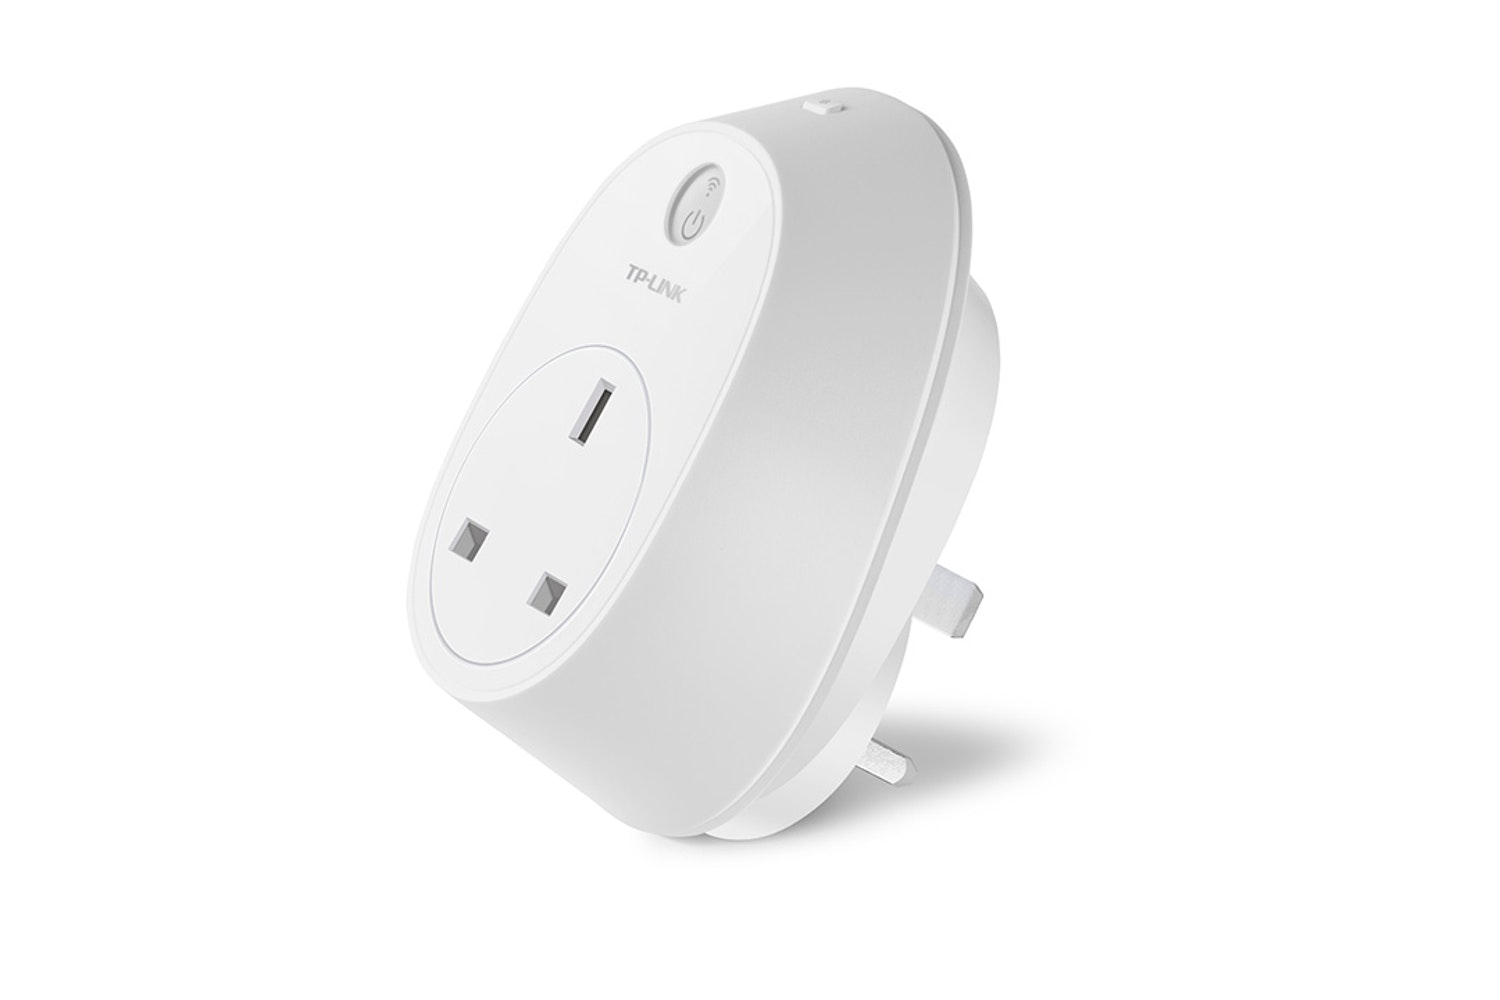 TP-LINK Wi-Fi Smart Plug with Energy Monitoring | HS110